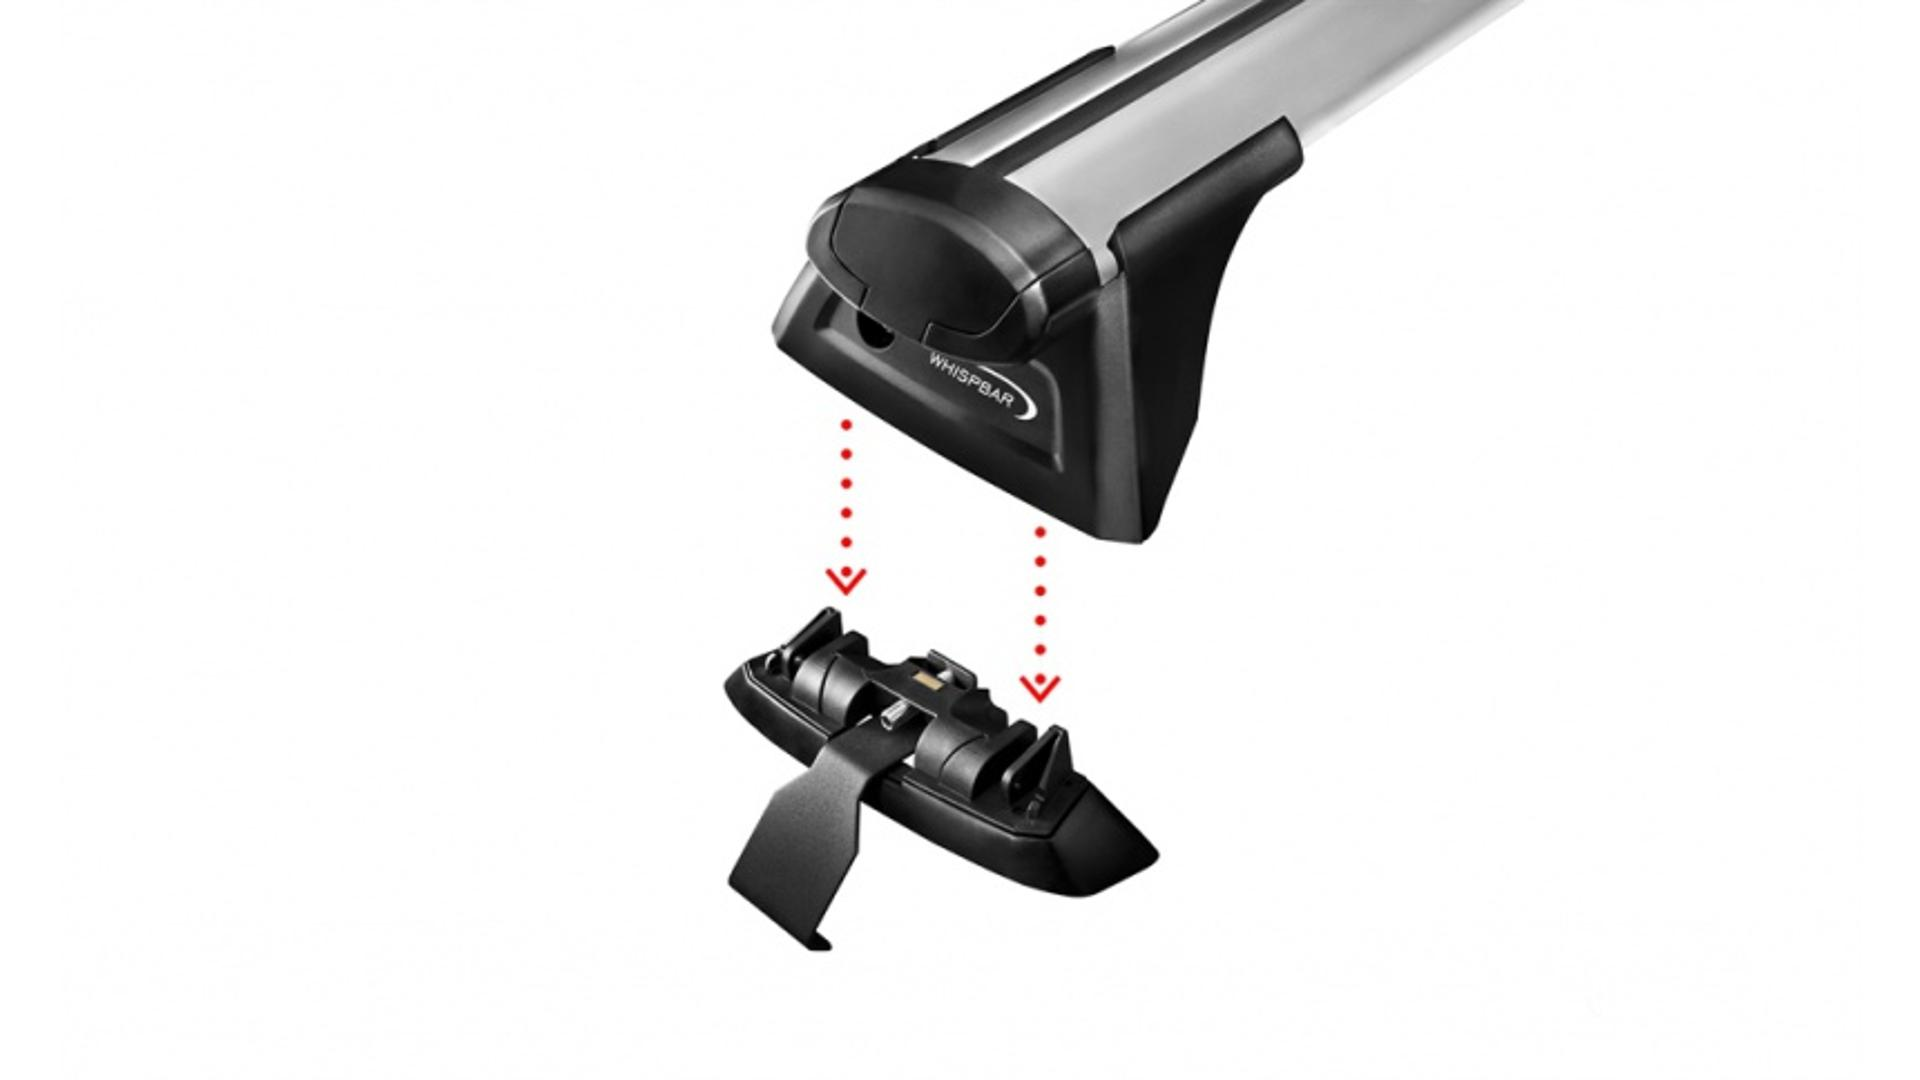 Whispbar montážní sada - Clamp Mount - K1092W